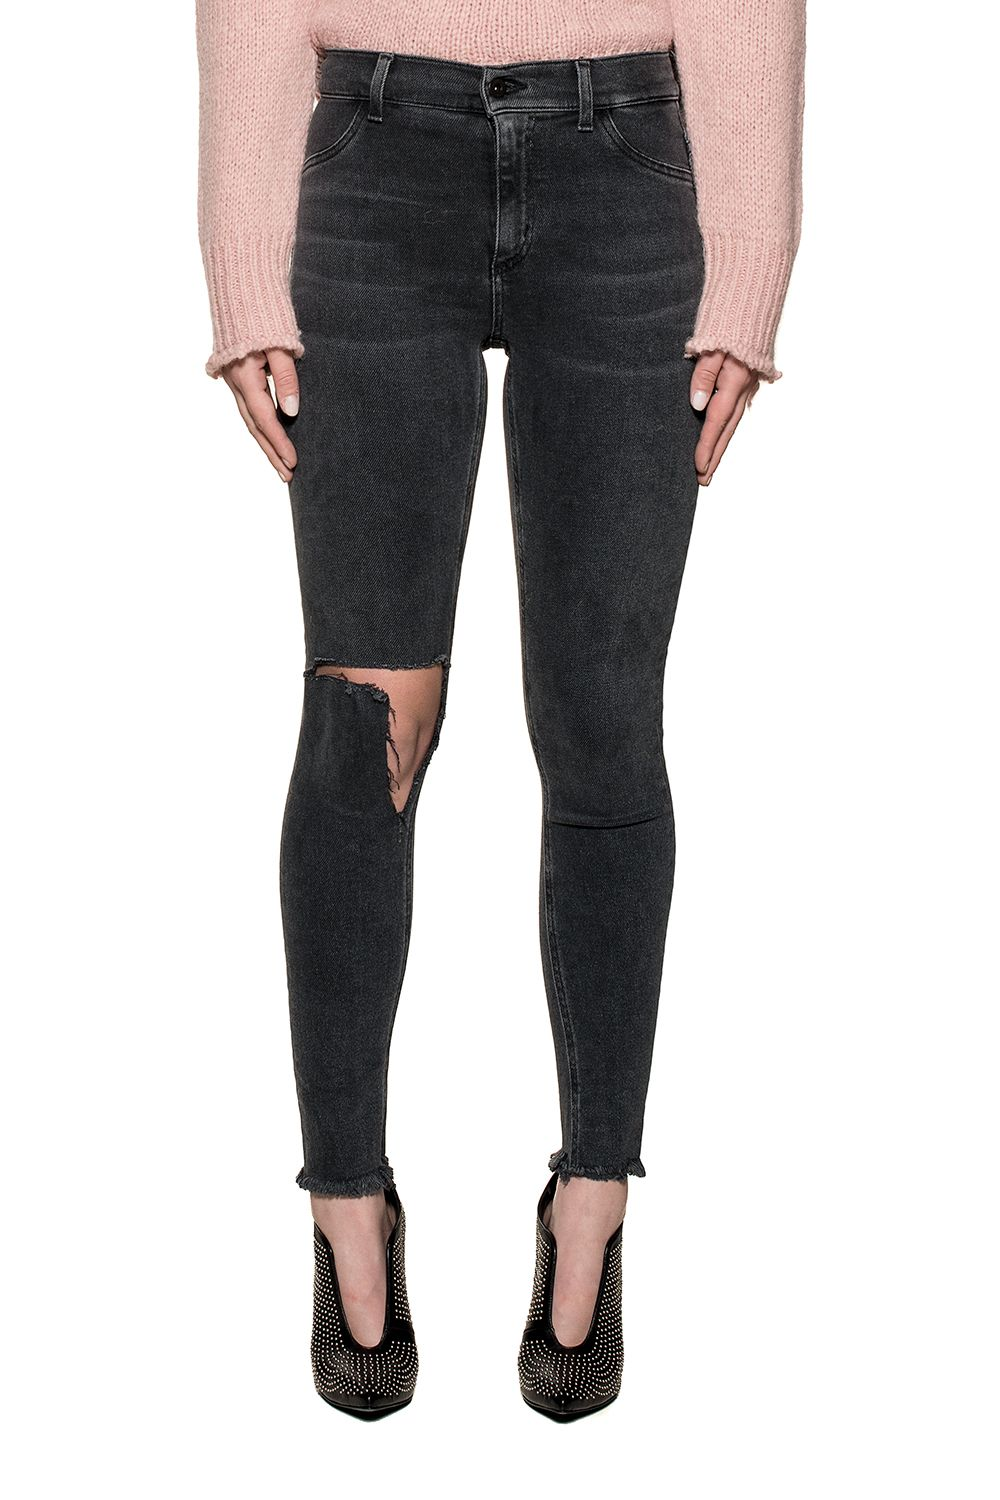 Dondup Black Appetite Denim Jeans